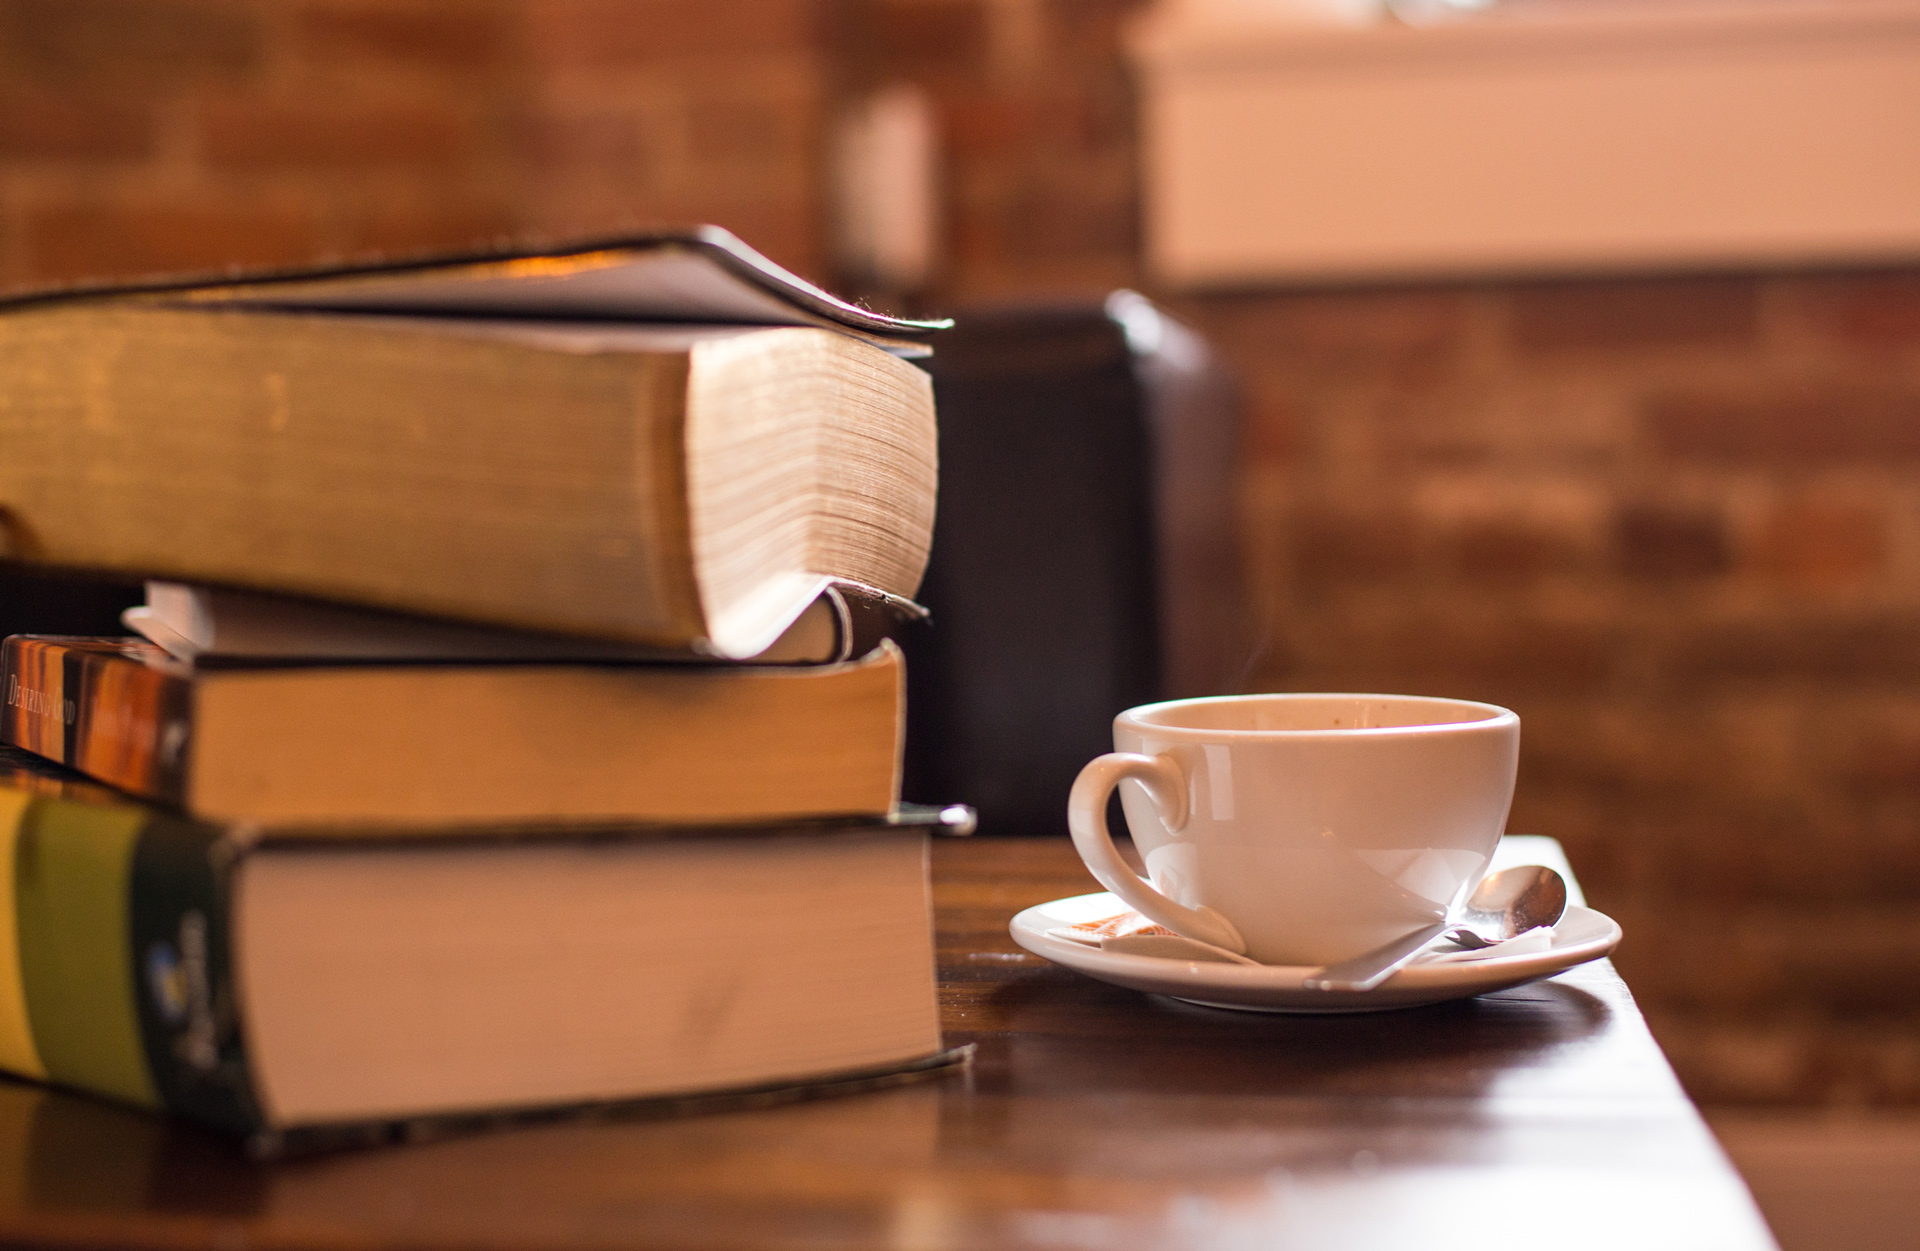 books on table with coffee mug